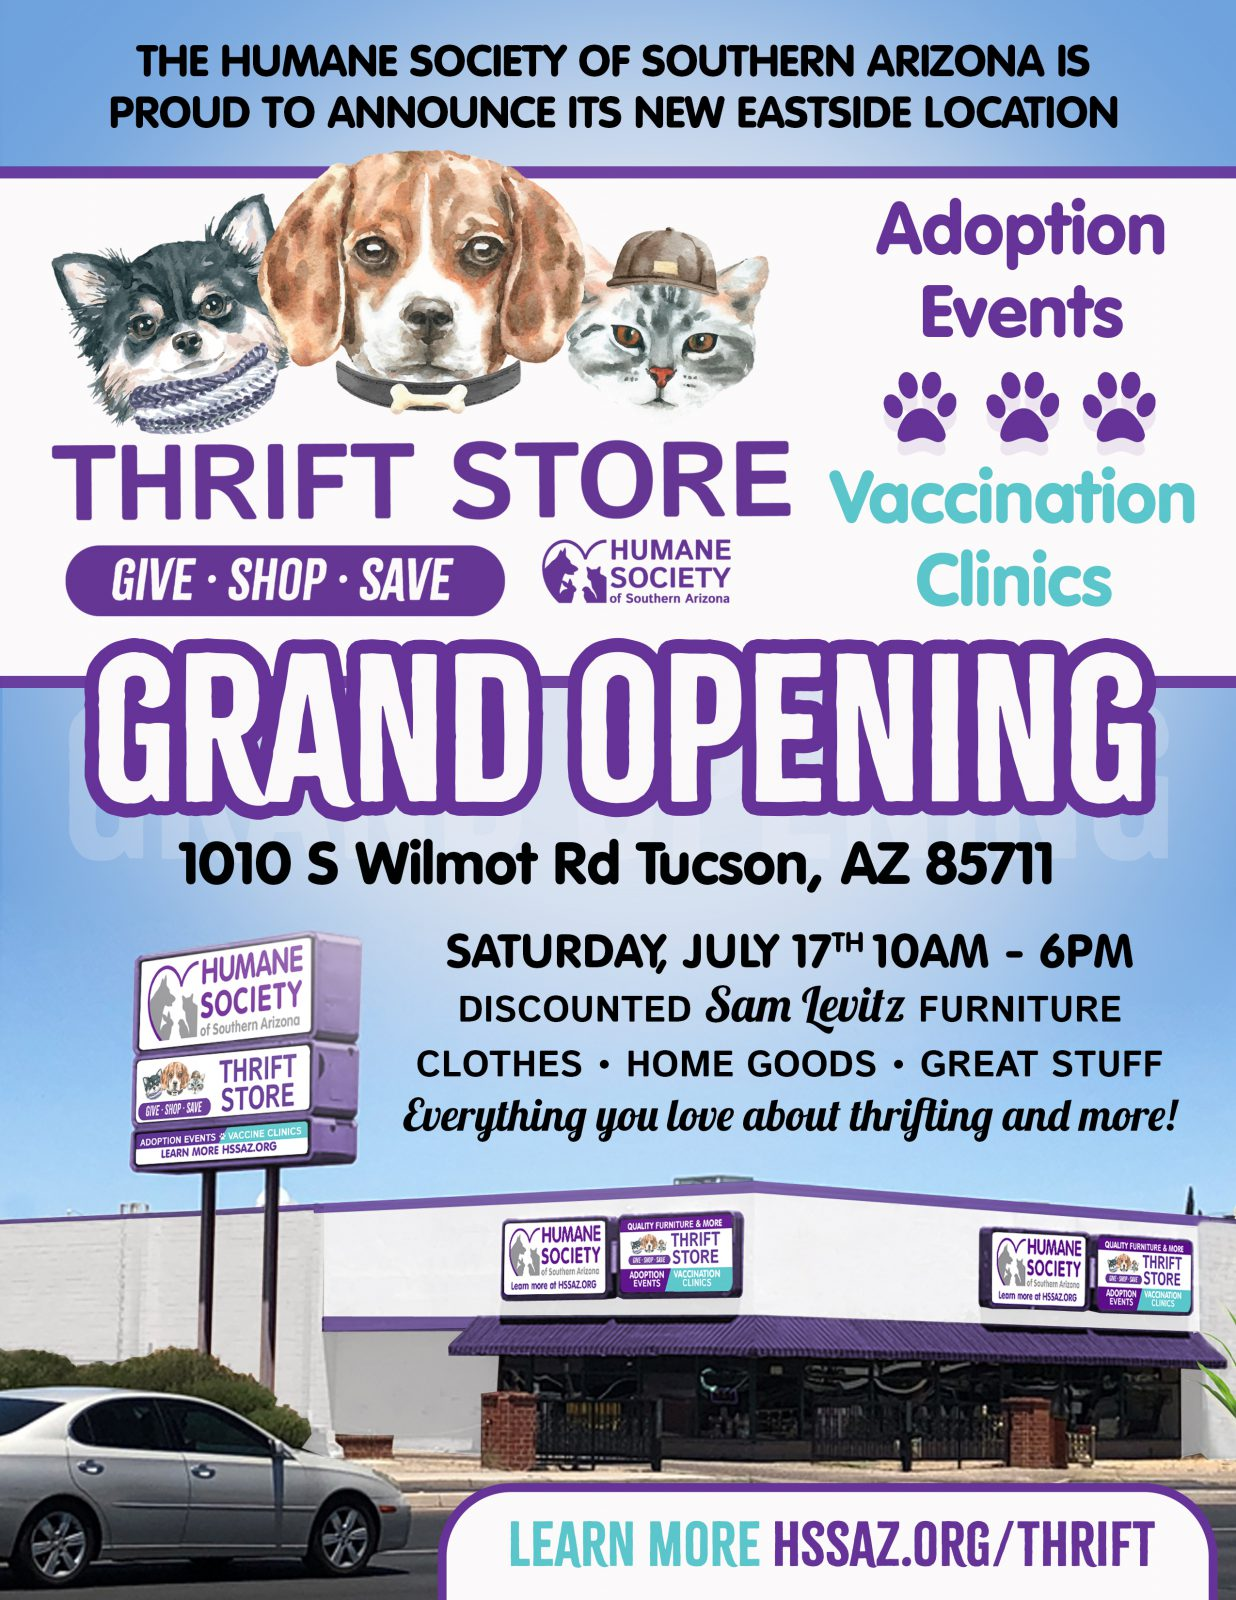 Thrift Store Grand Opening Flyer 2021